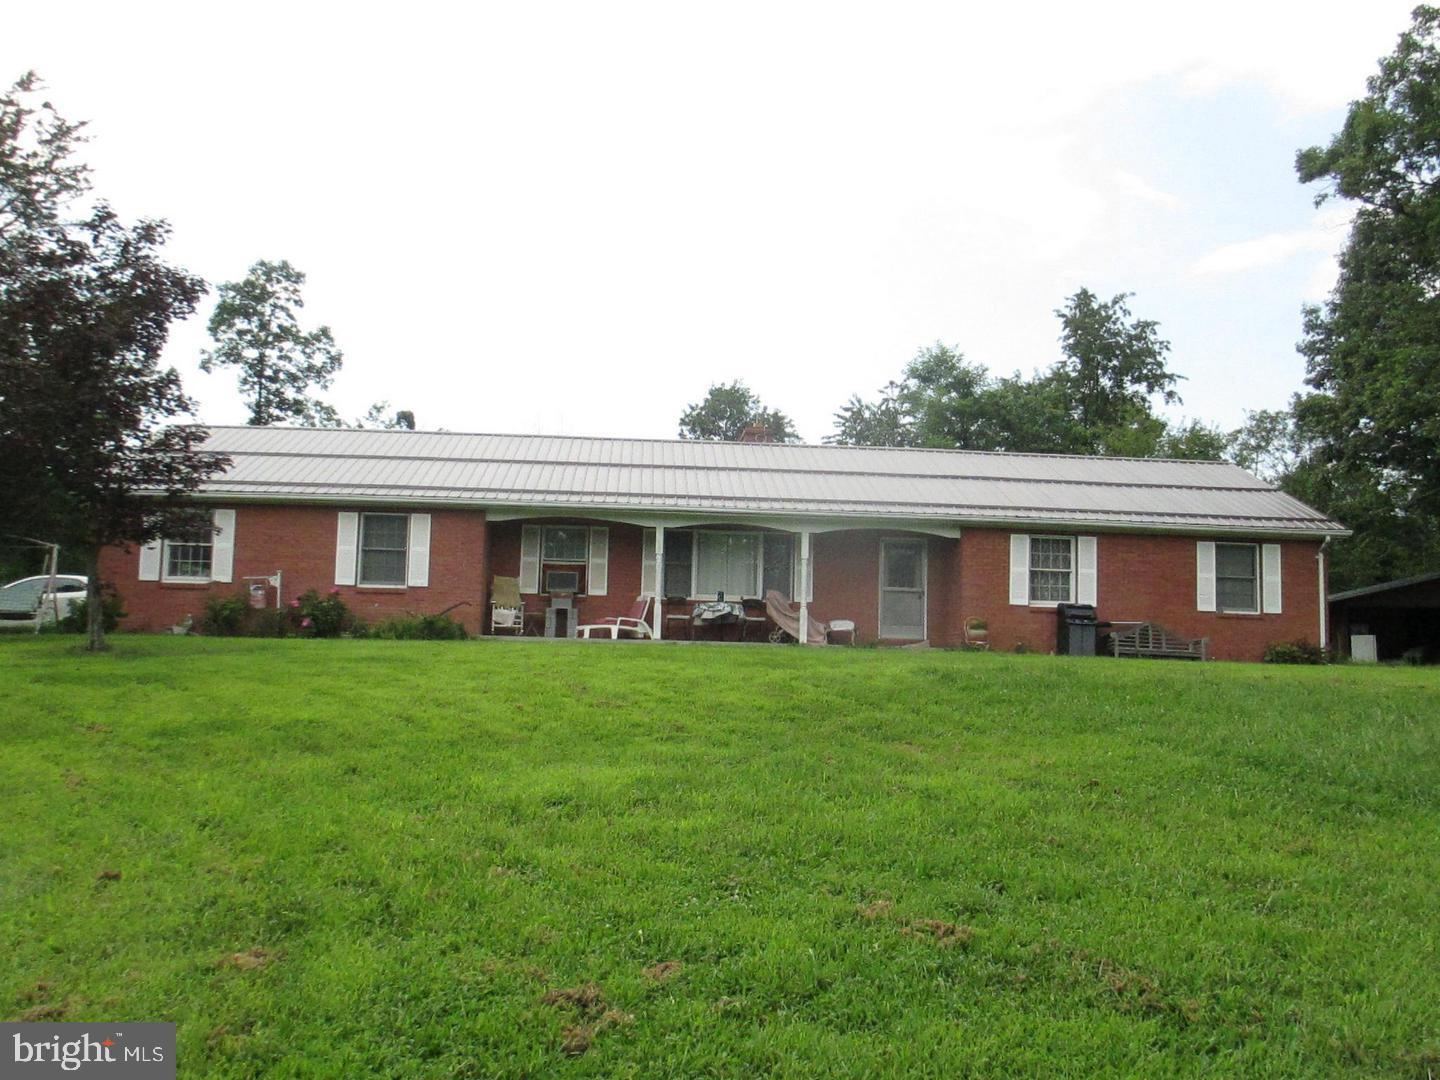 210 BLESSED WAY, AUGUSTA, WV 26704